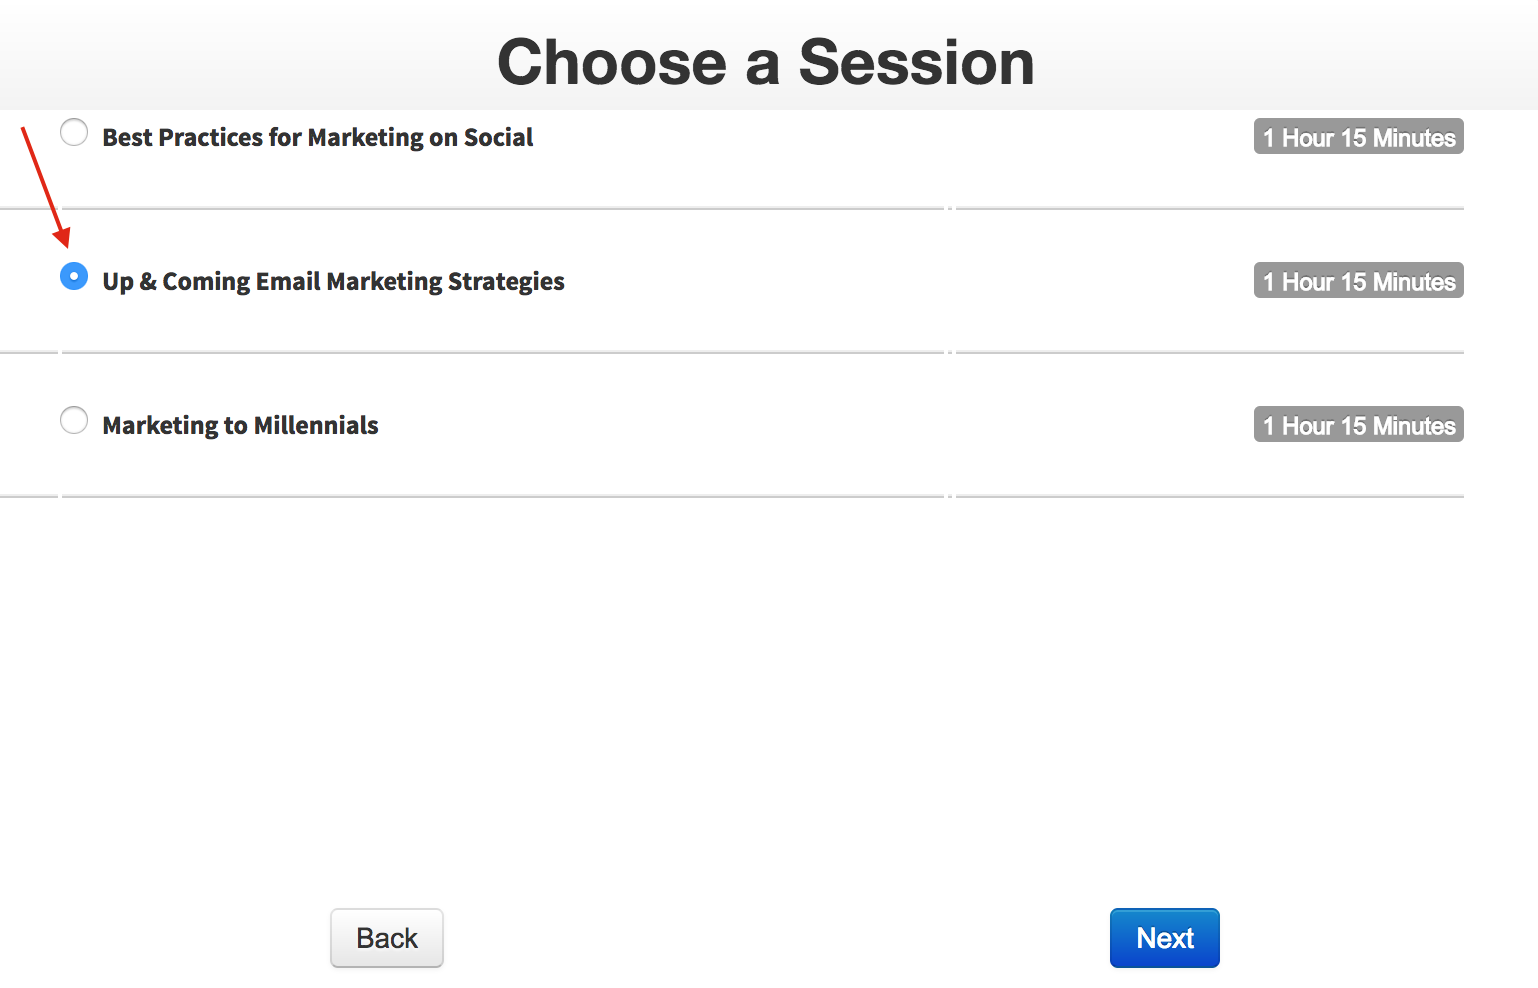 Conference attendees can select the session they want to join